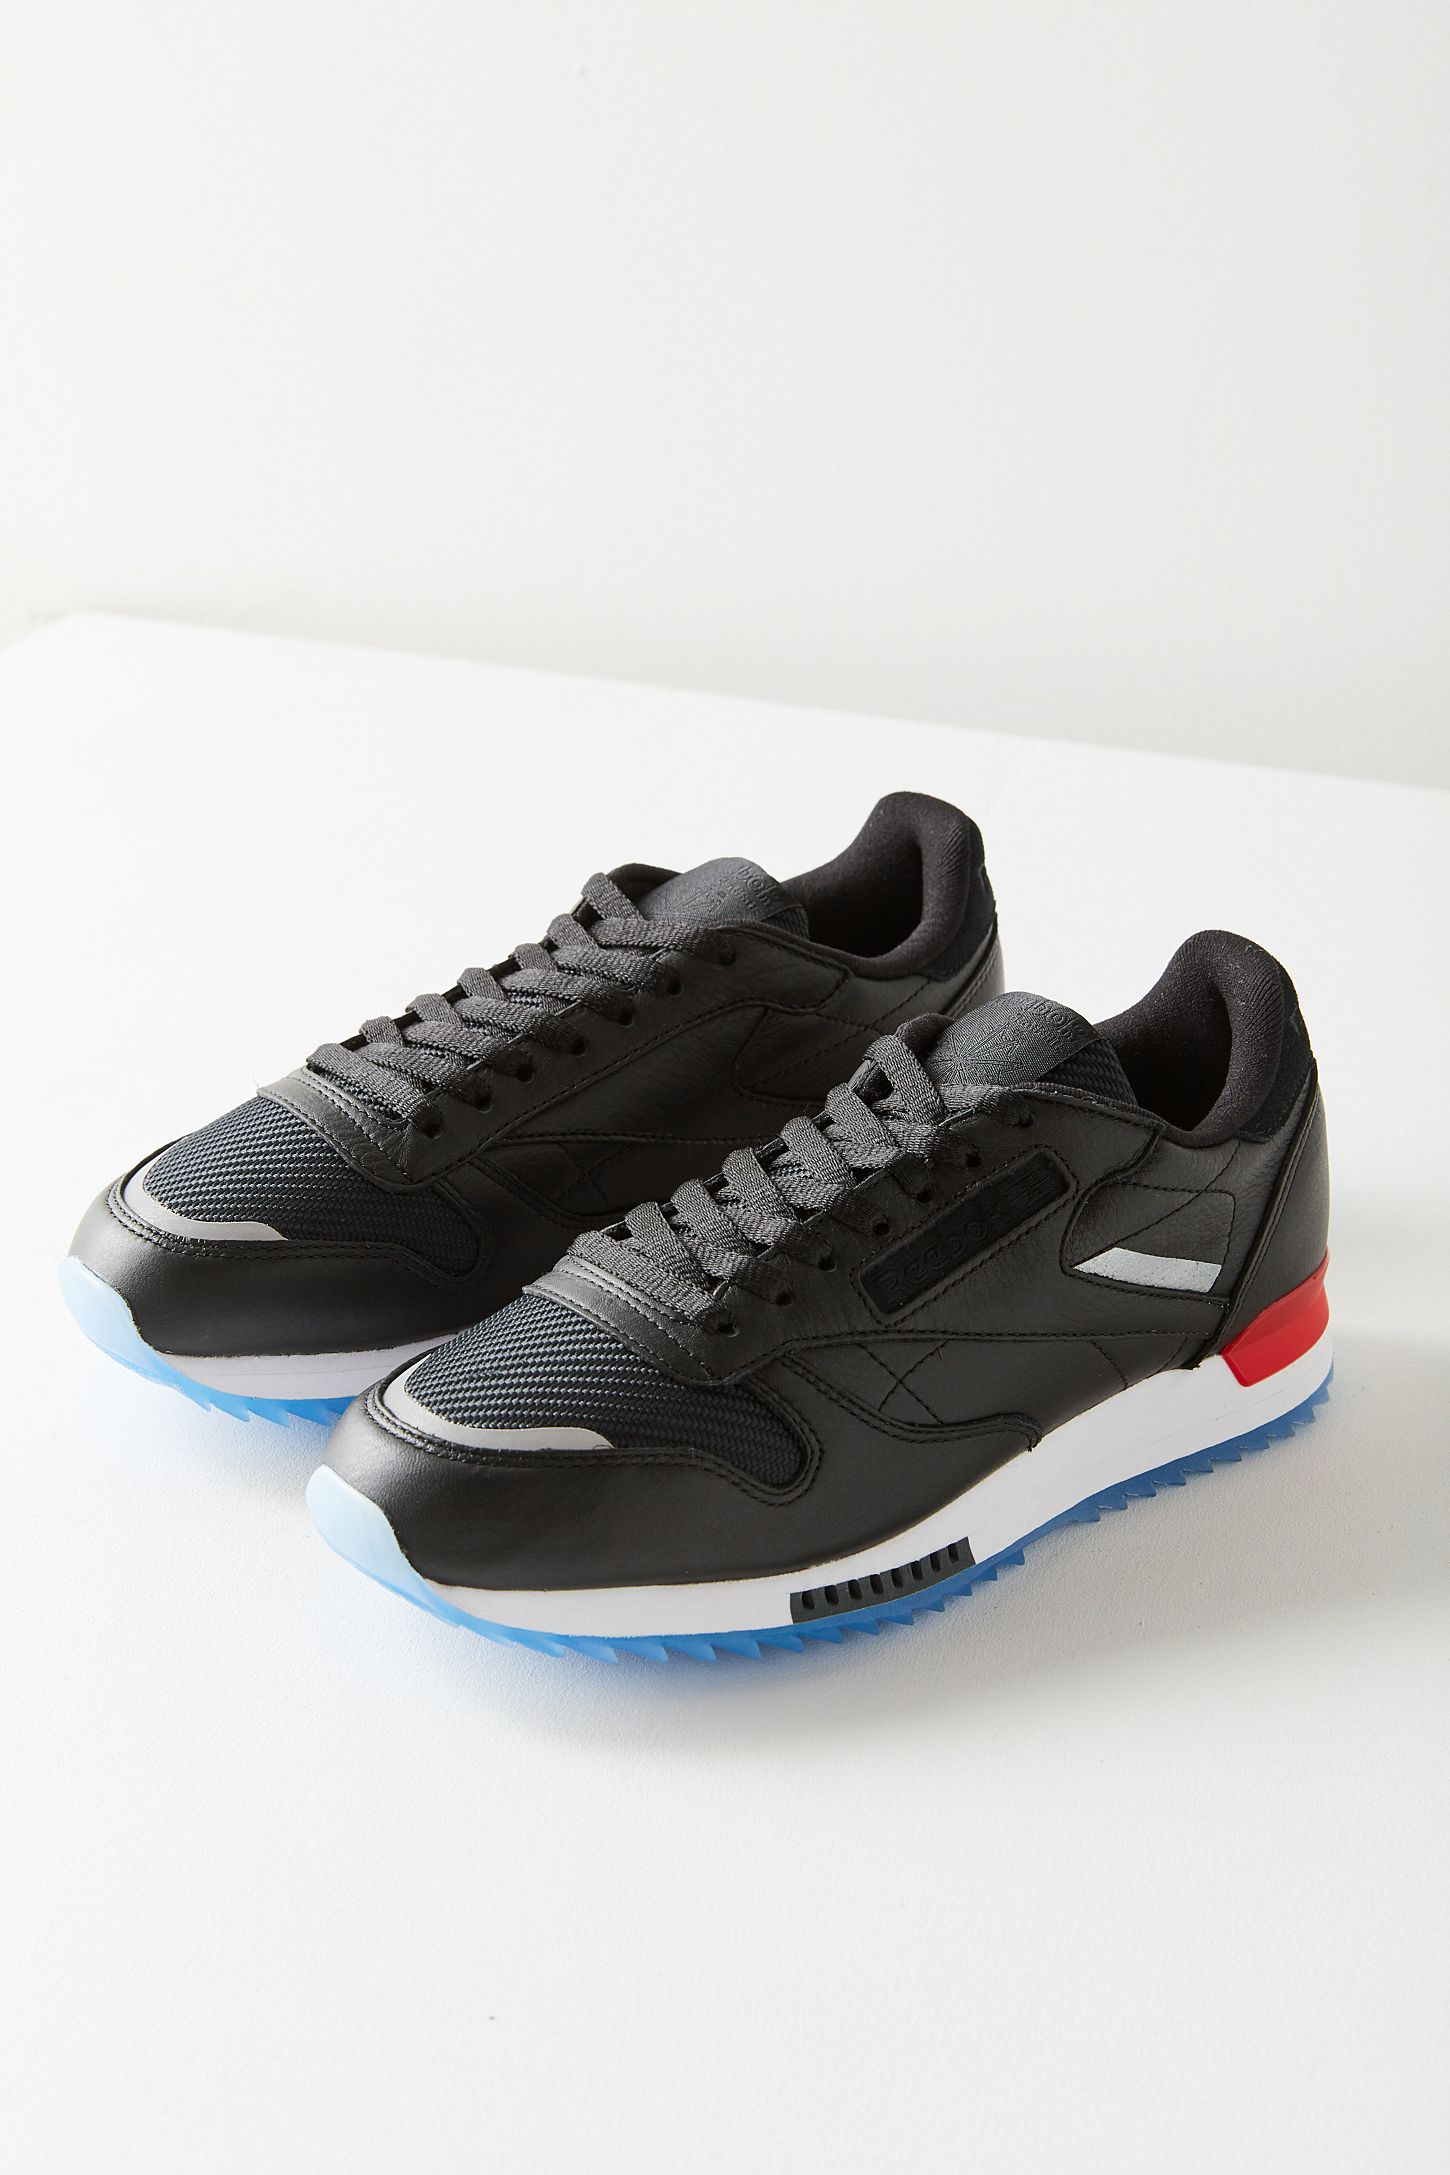 5ba4cf0a10e1 Reebok Classic Leather Ripple Low BP Sneaker. Tap image to zoom. Hover to  zoom. Double Tap to Zoom